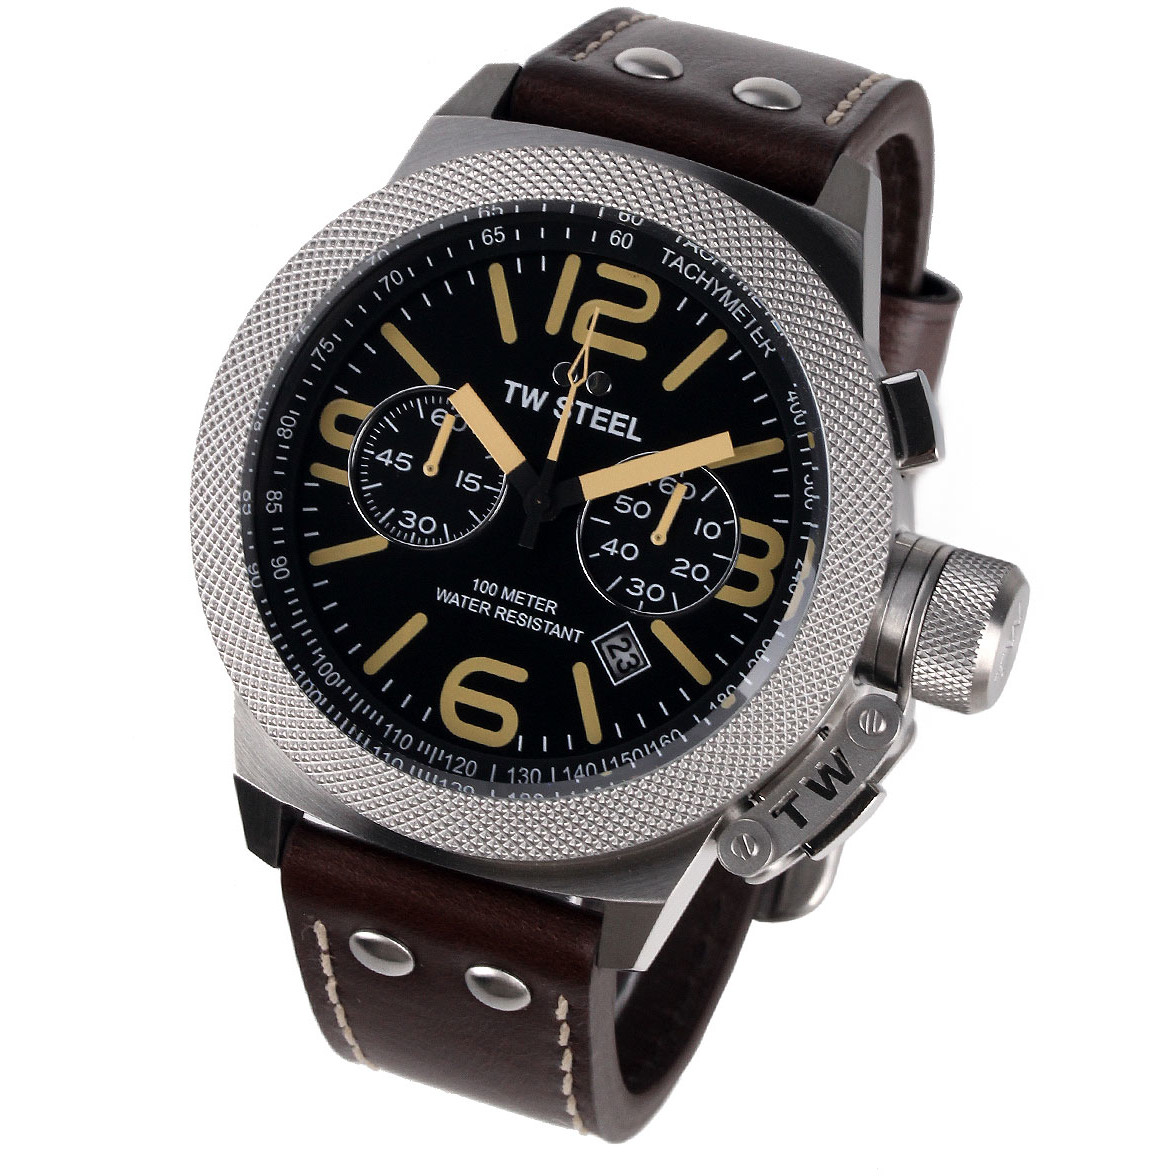 Ceas barbatesc TW-Steel CS34 Canteen Leather Chronograph de mana original